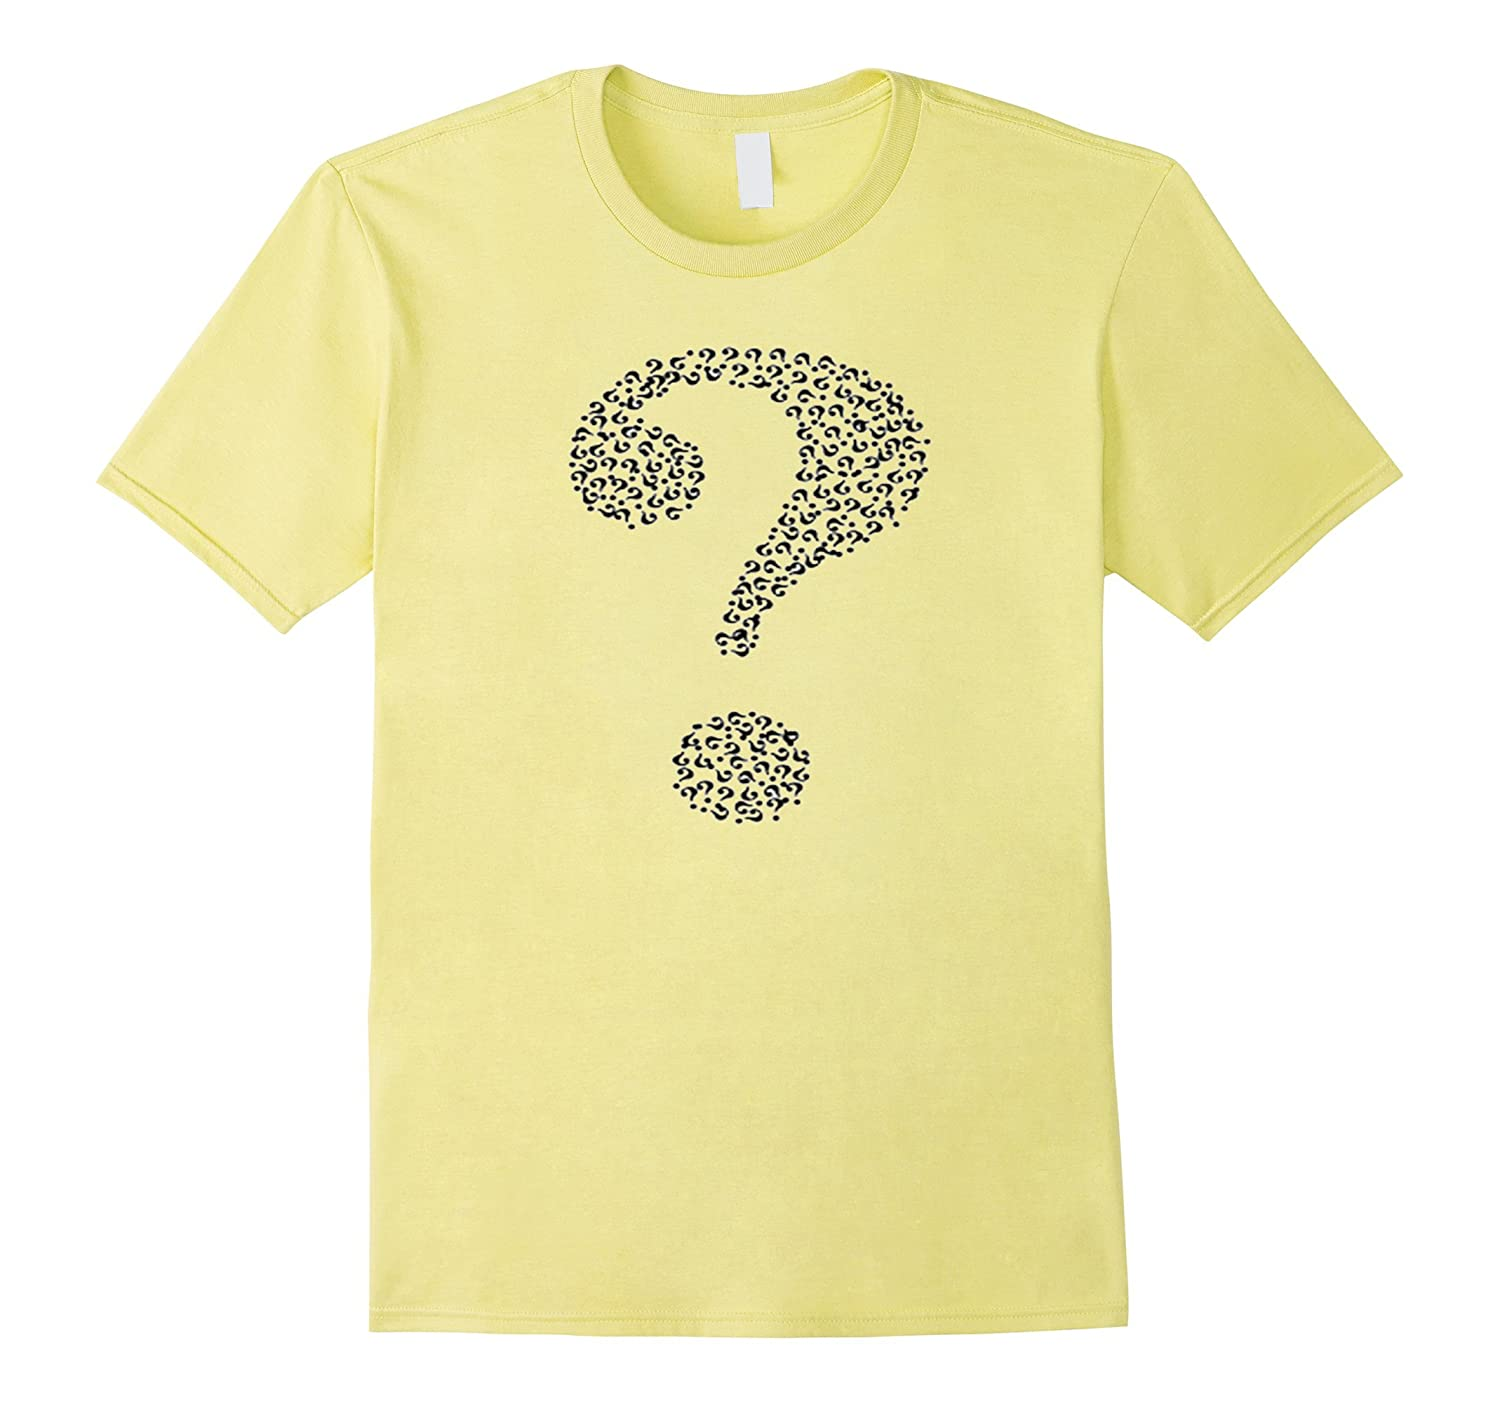 ? WHAT TEE SHIRT QUESTION MARK T SHIRT-TH